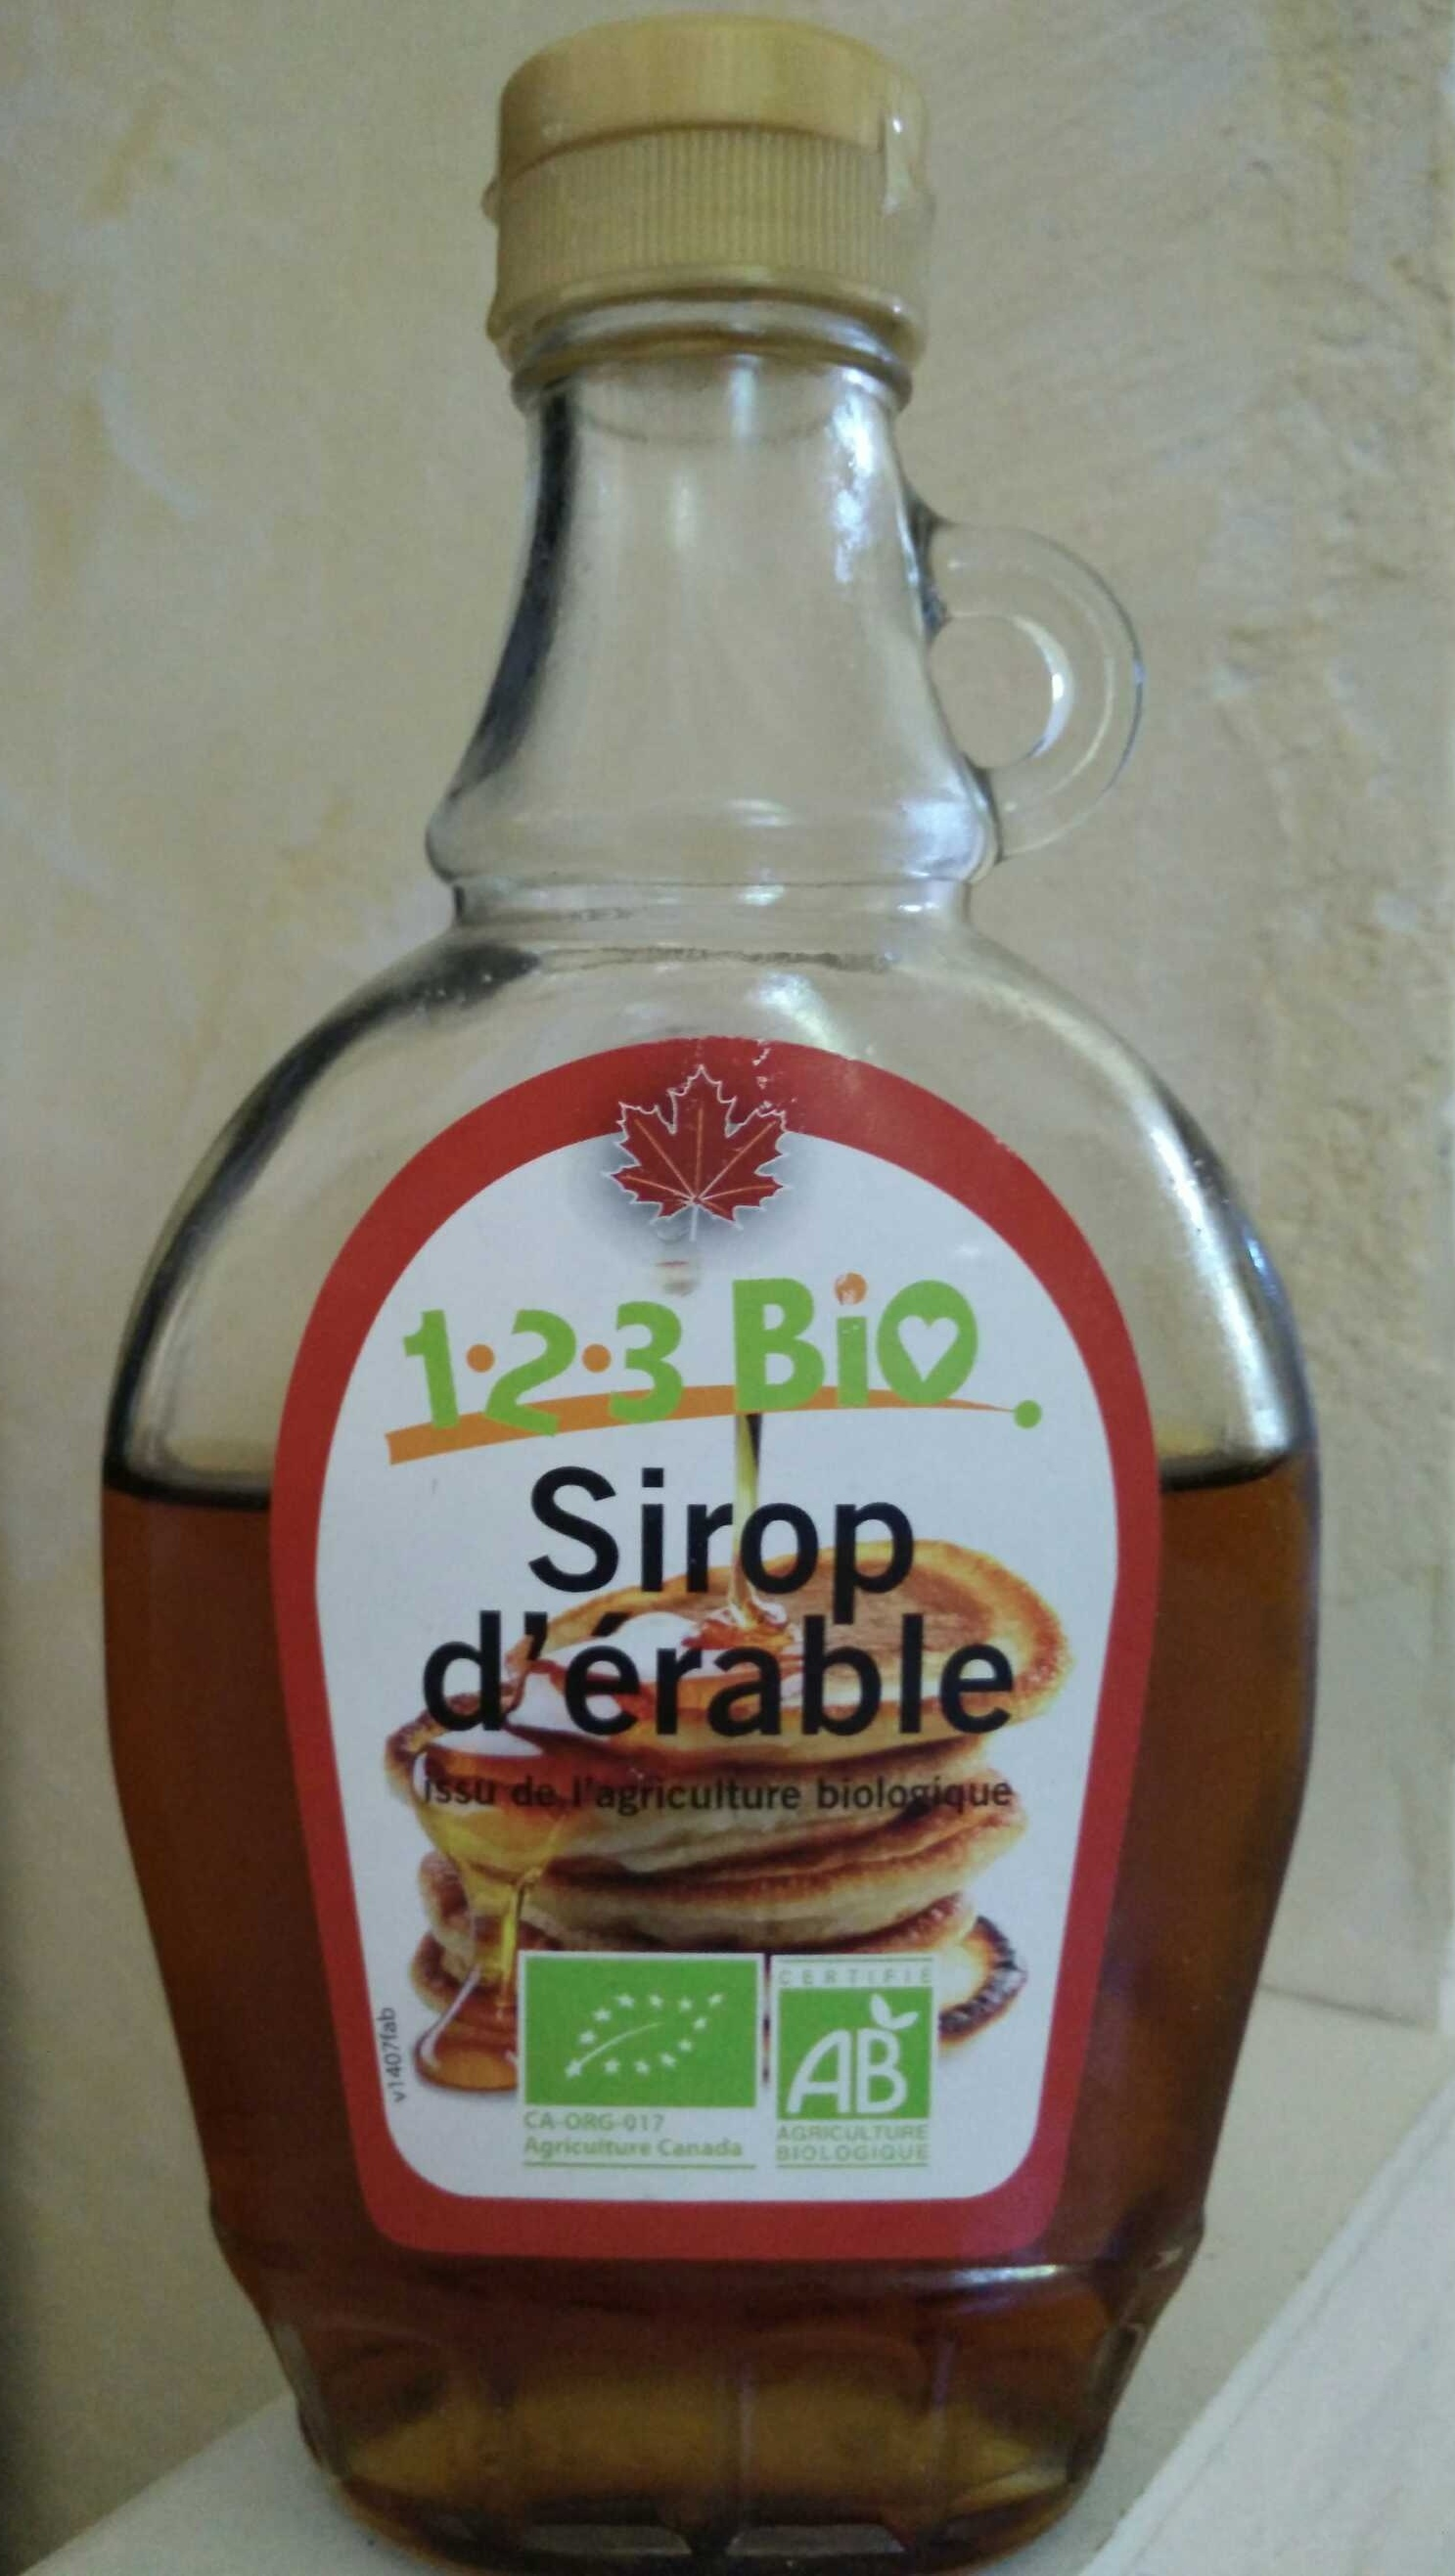 Sirop d'érable - Product - fr